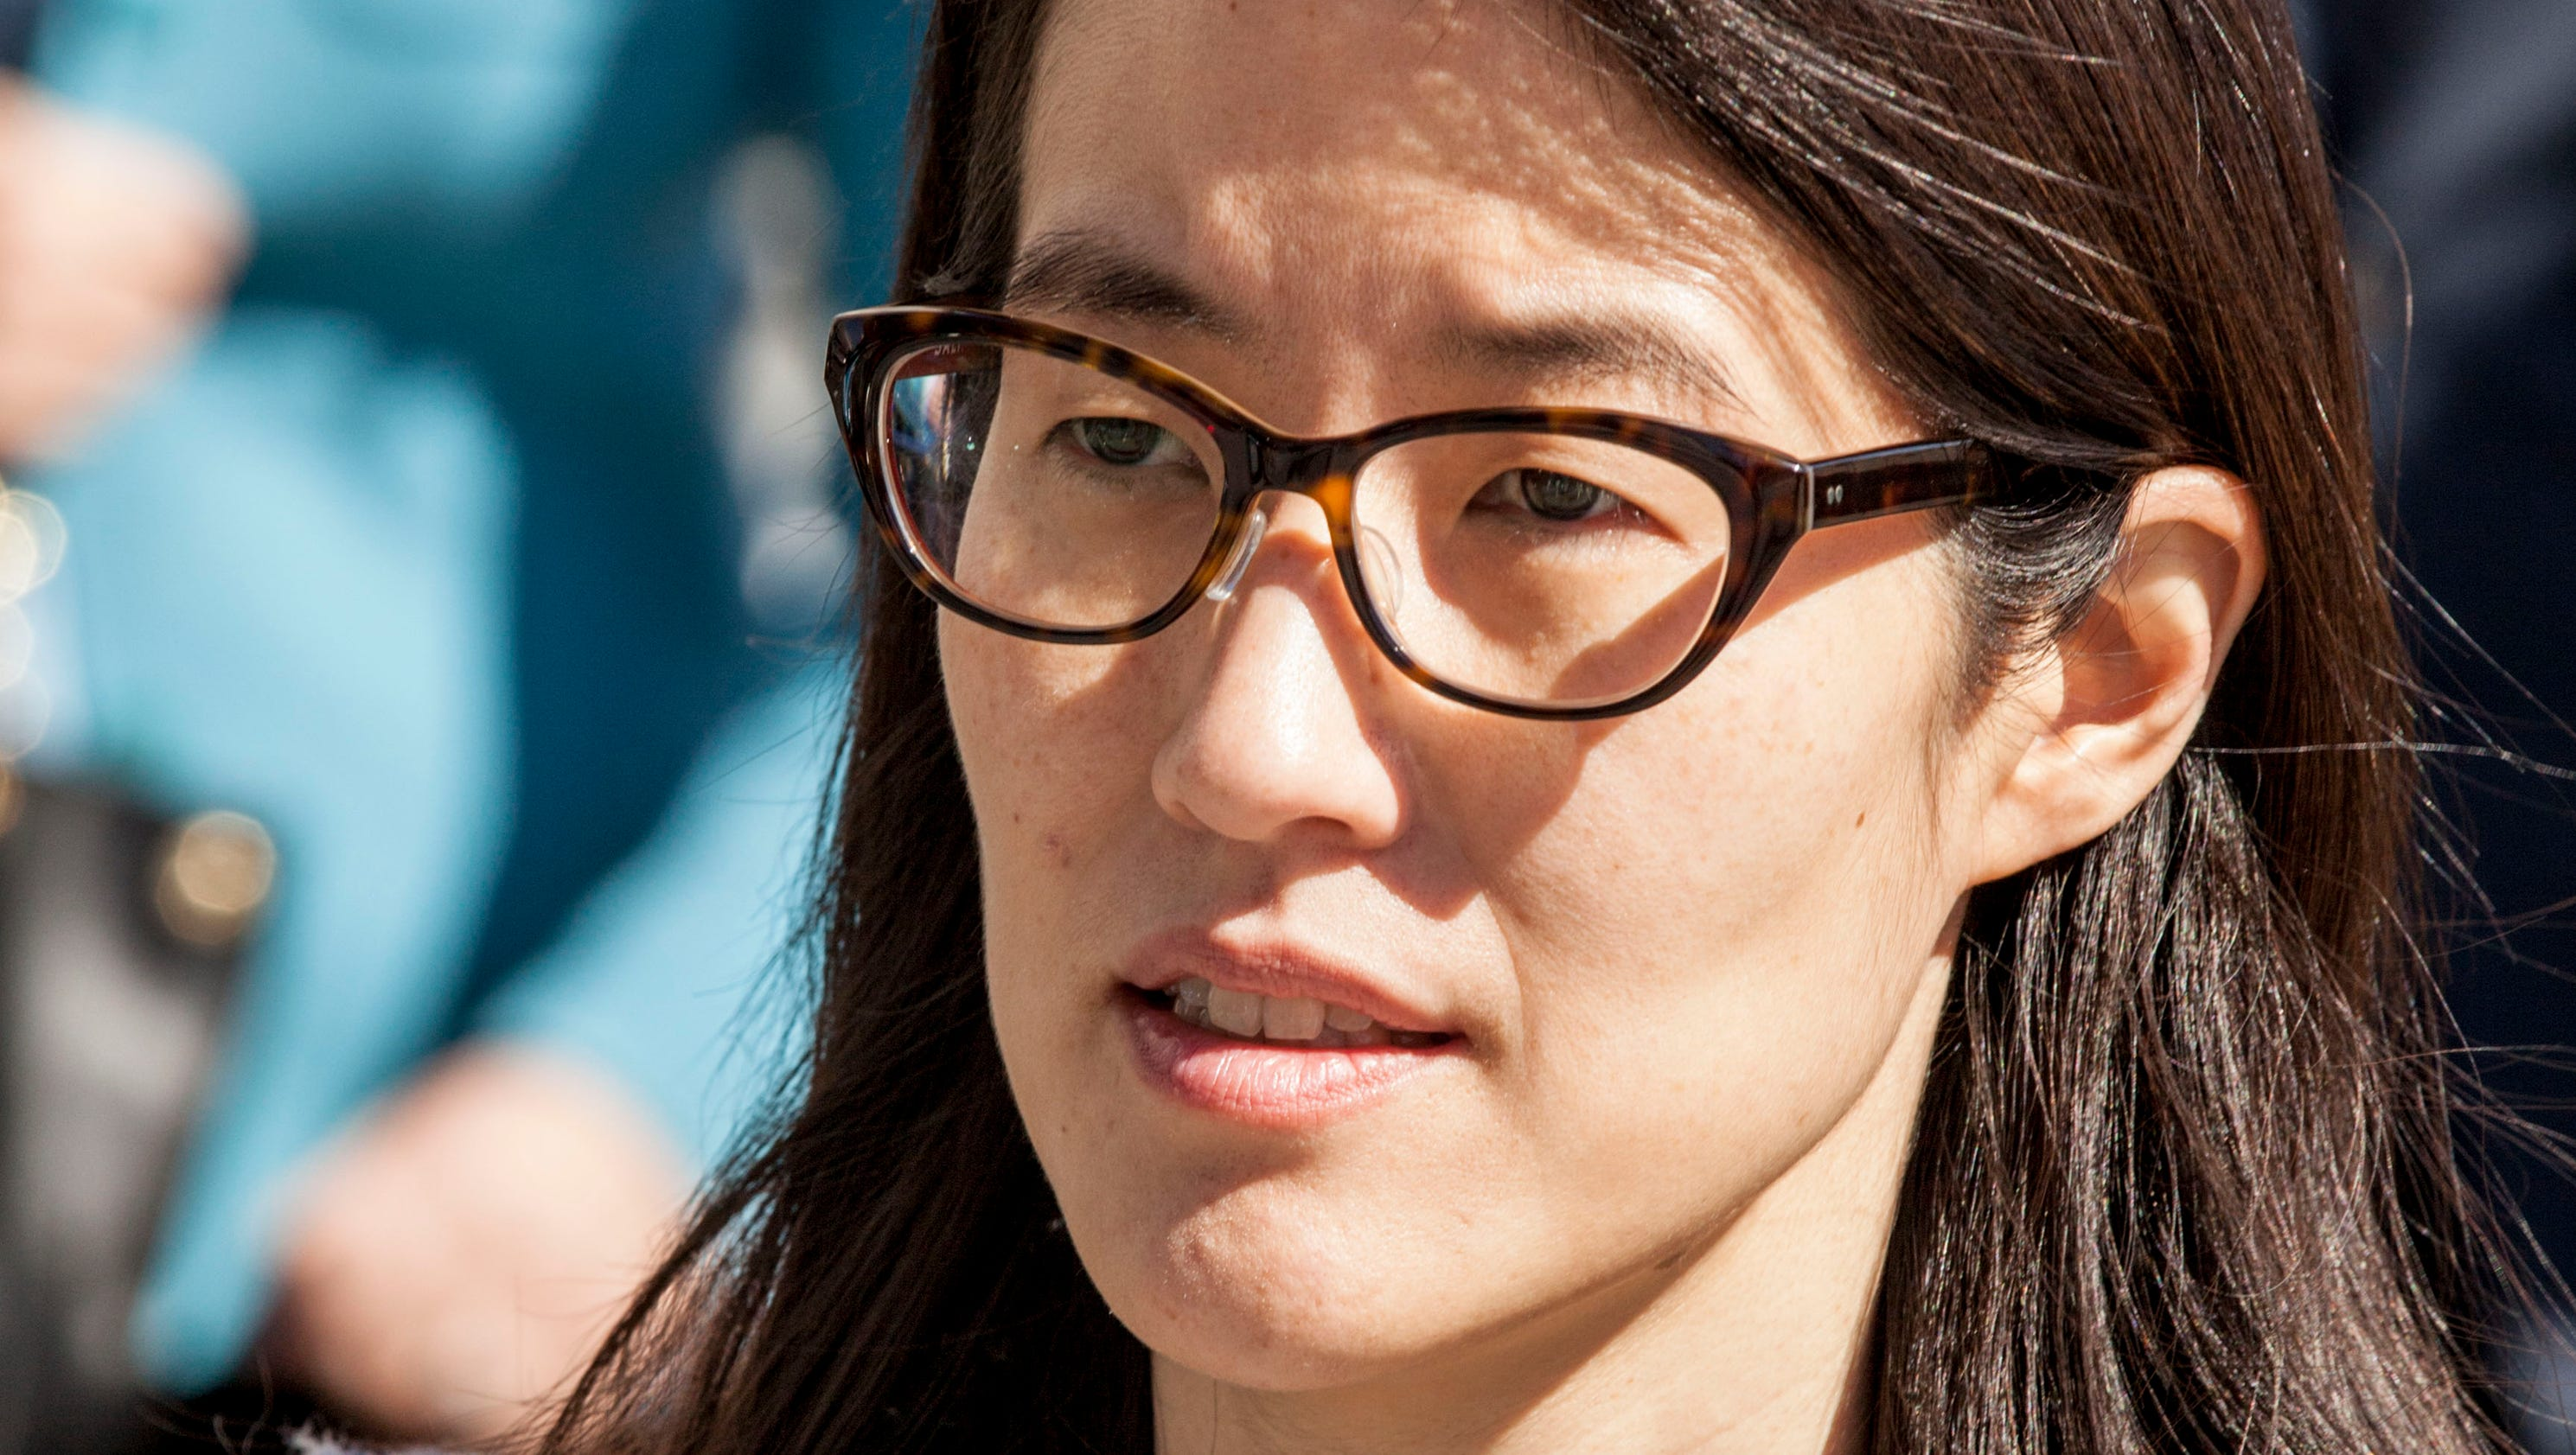 Ellen pao 39 s suit was wake up call for silicon valley for Fletcher